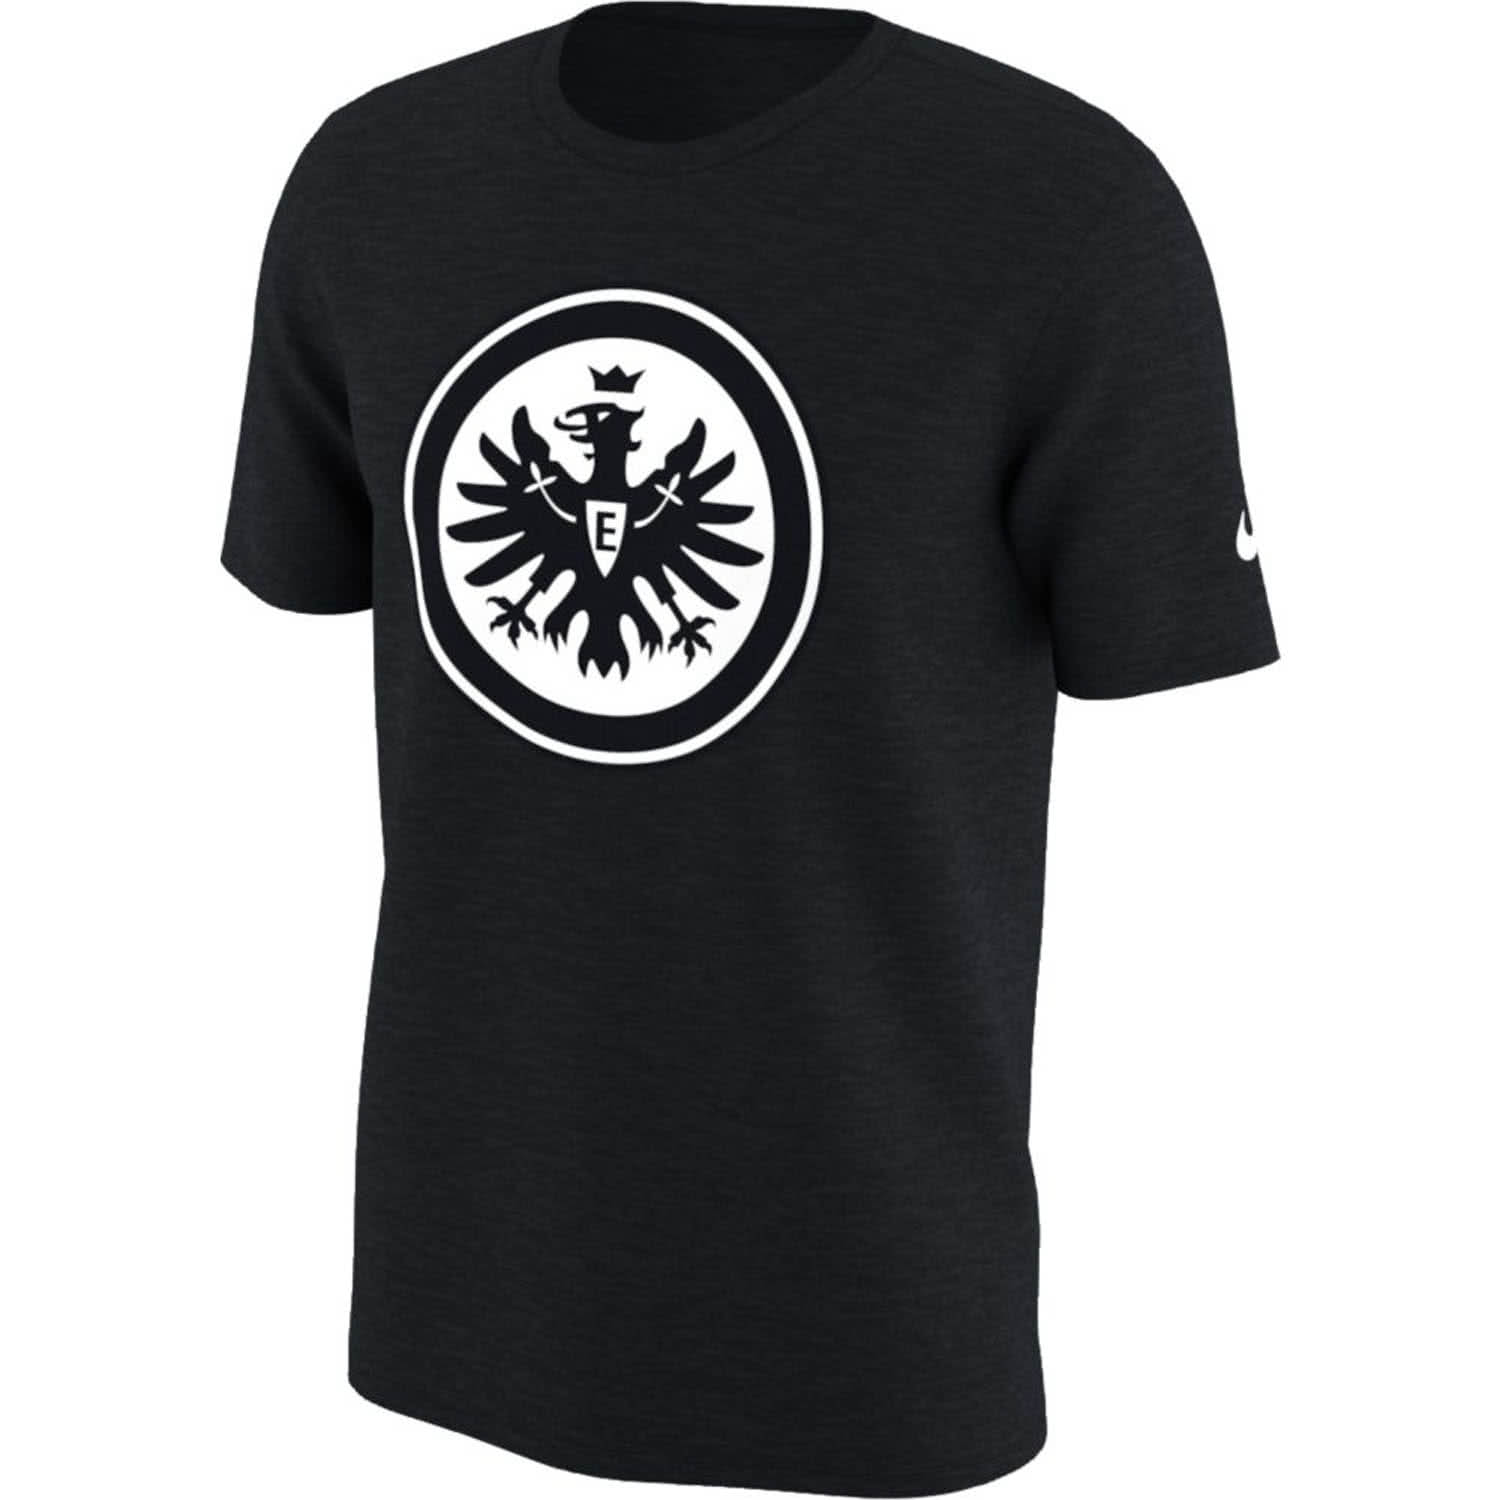 nike herren t shirt eintracht frankfurt tee evergreen. Black Bedroom Furniture Sets. Home Design Ideas